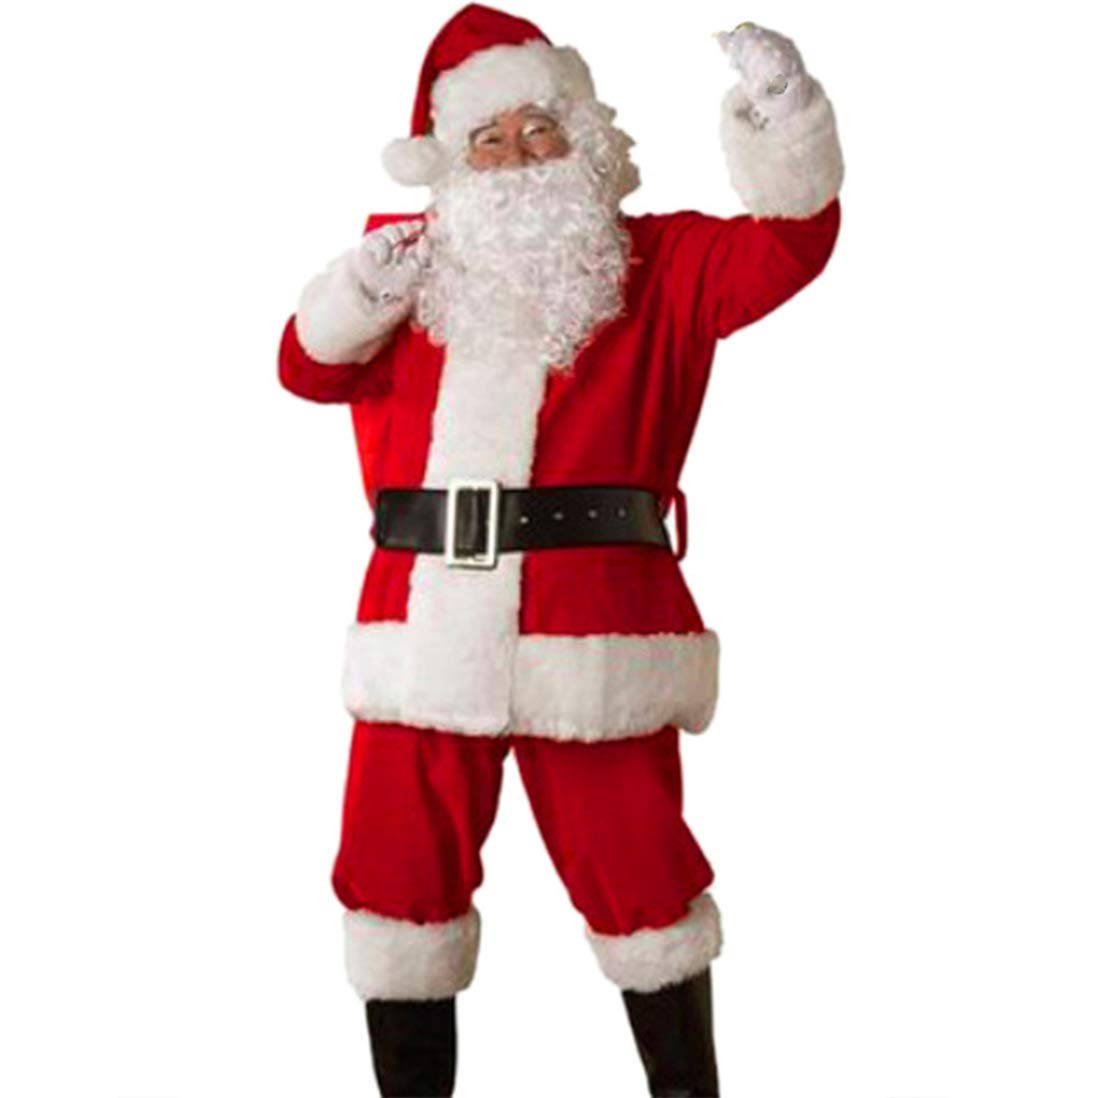 5Pcs Christmas Santa Claus Outfit Set - Mens Tops Pants Suit Belt Hat Santa Deluxe Set Holiday Costume Cosplay Clothing (Red, X-Large)